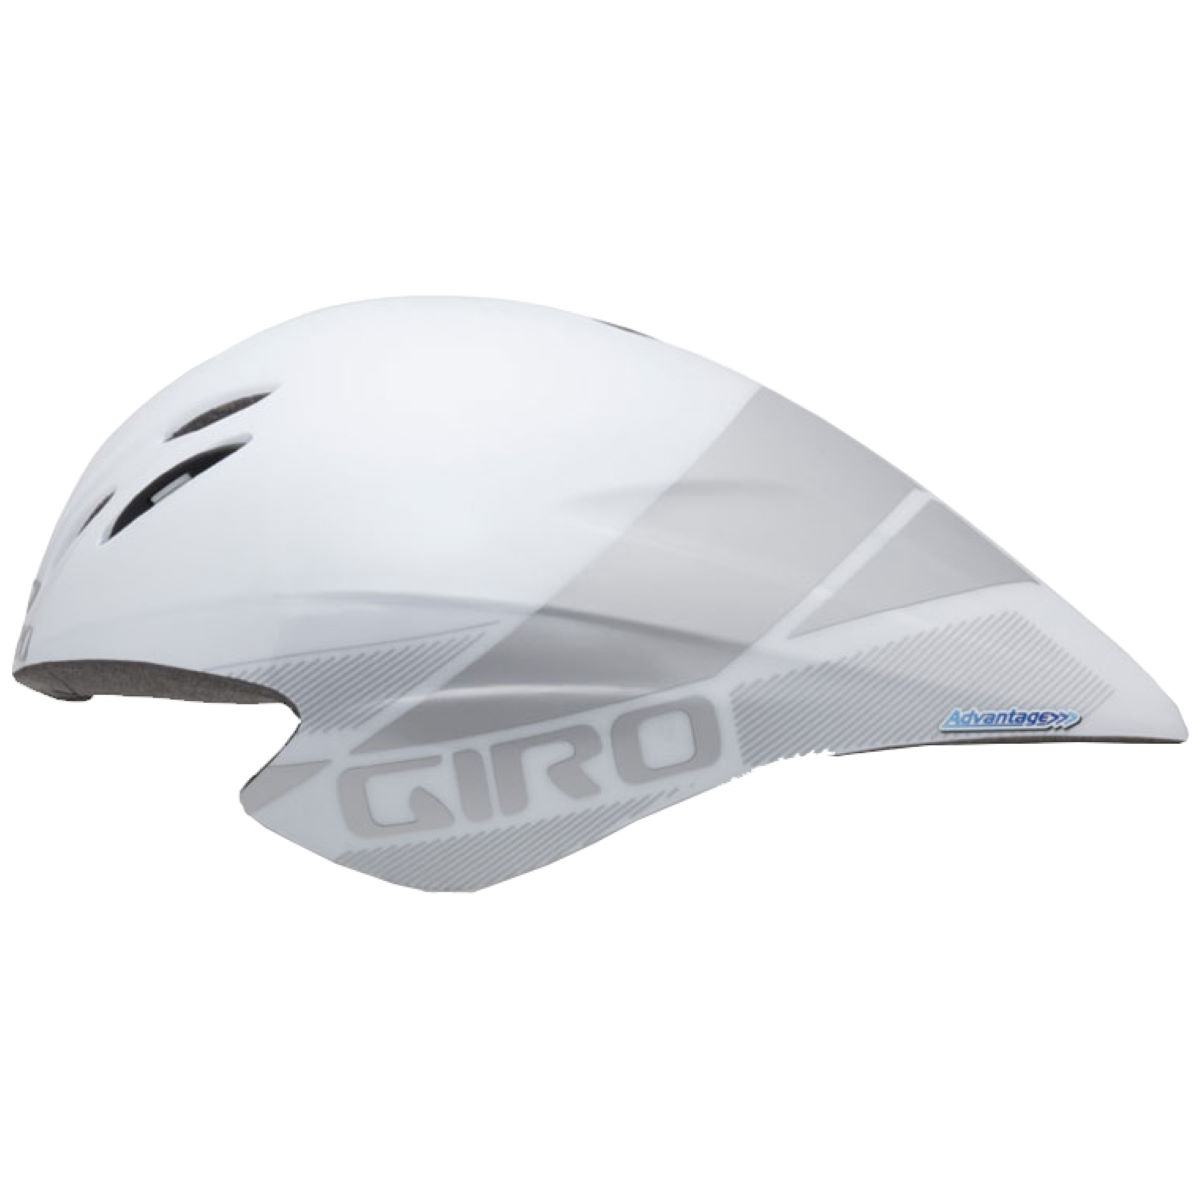 Casque de contre-la-montre Giro Advantage 2 - Small 51-55cm Blanc/Argenté Casques de route